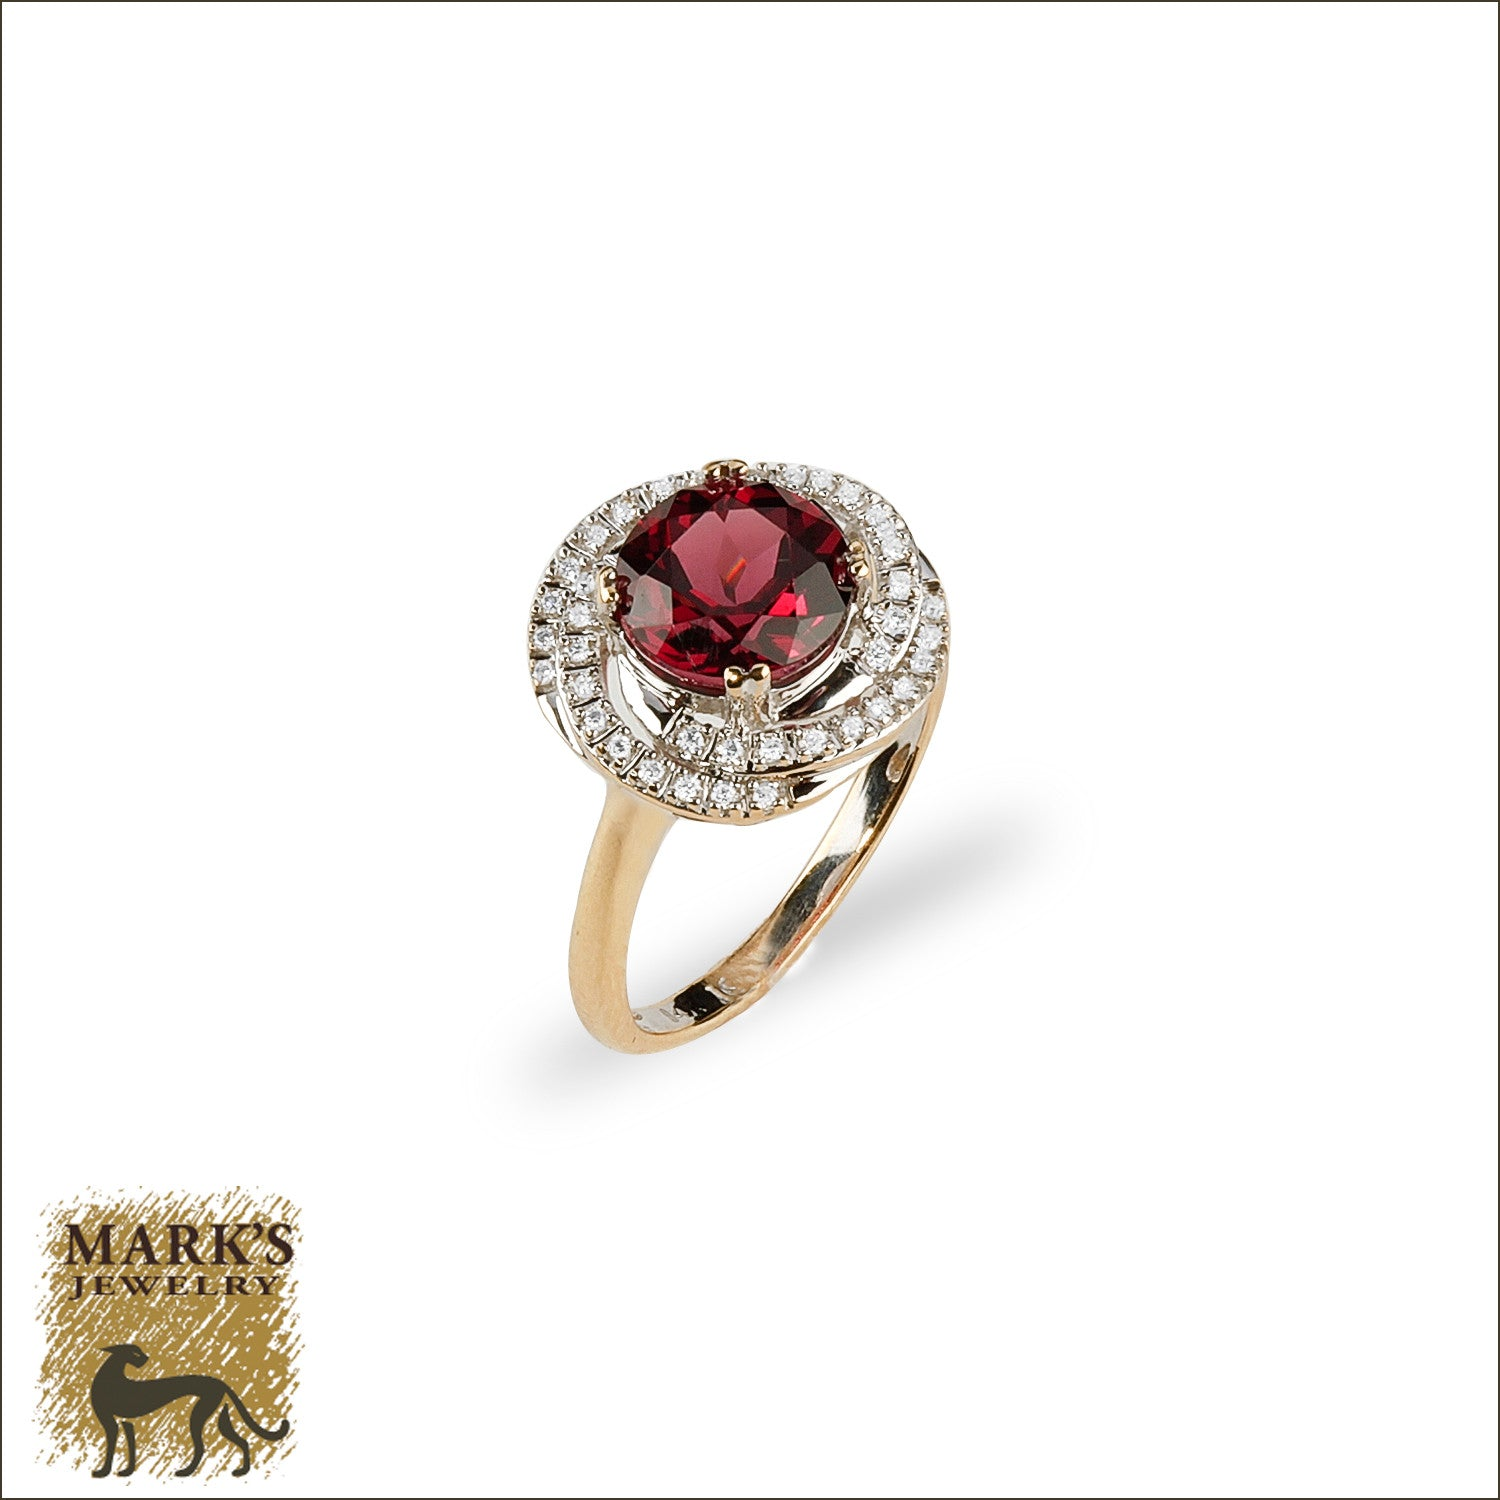 vintage victorian and upscale georgian january false jewellery the crop engagement rhodolite article scale bee red jewels rings ring sapphire birthstone antique in subsampling garnet s love chaumet garnets